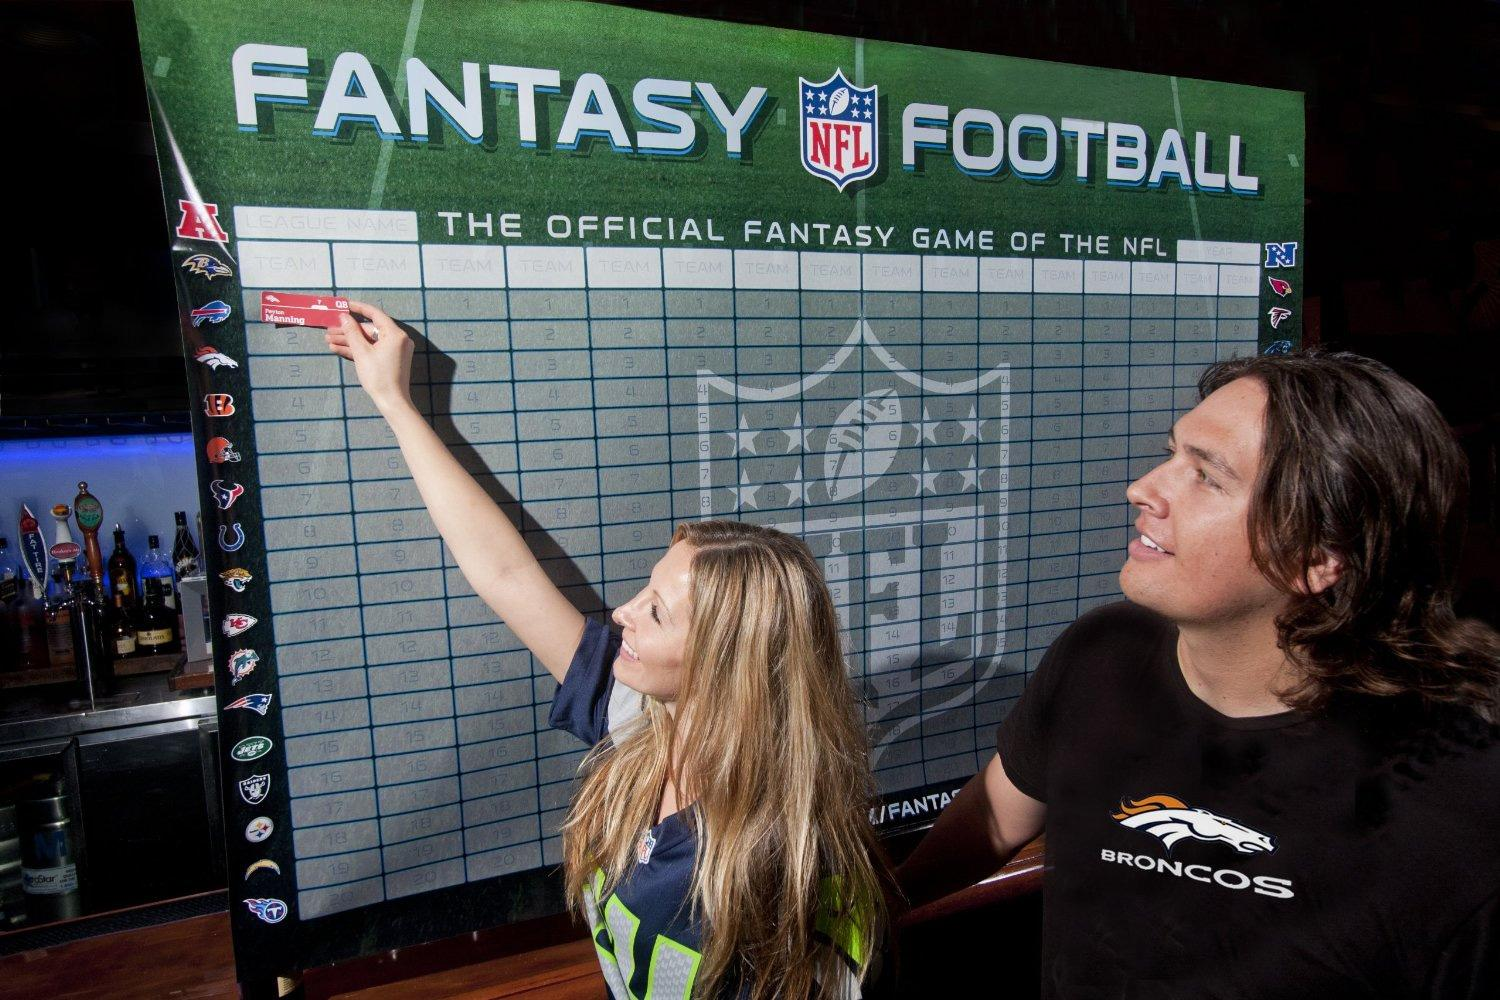 Fantasy Football Blog - 5 things to know before your fantasy draft